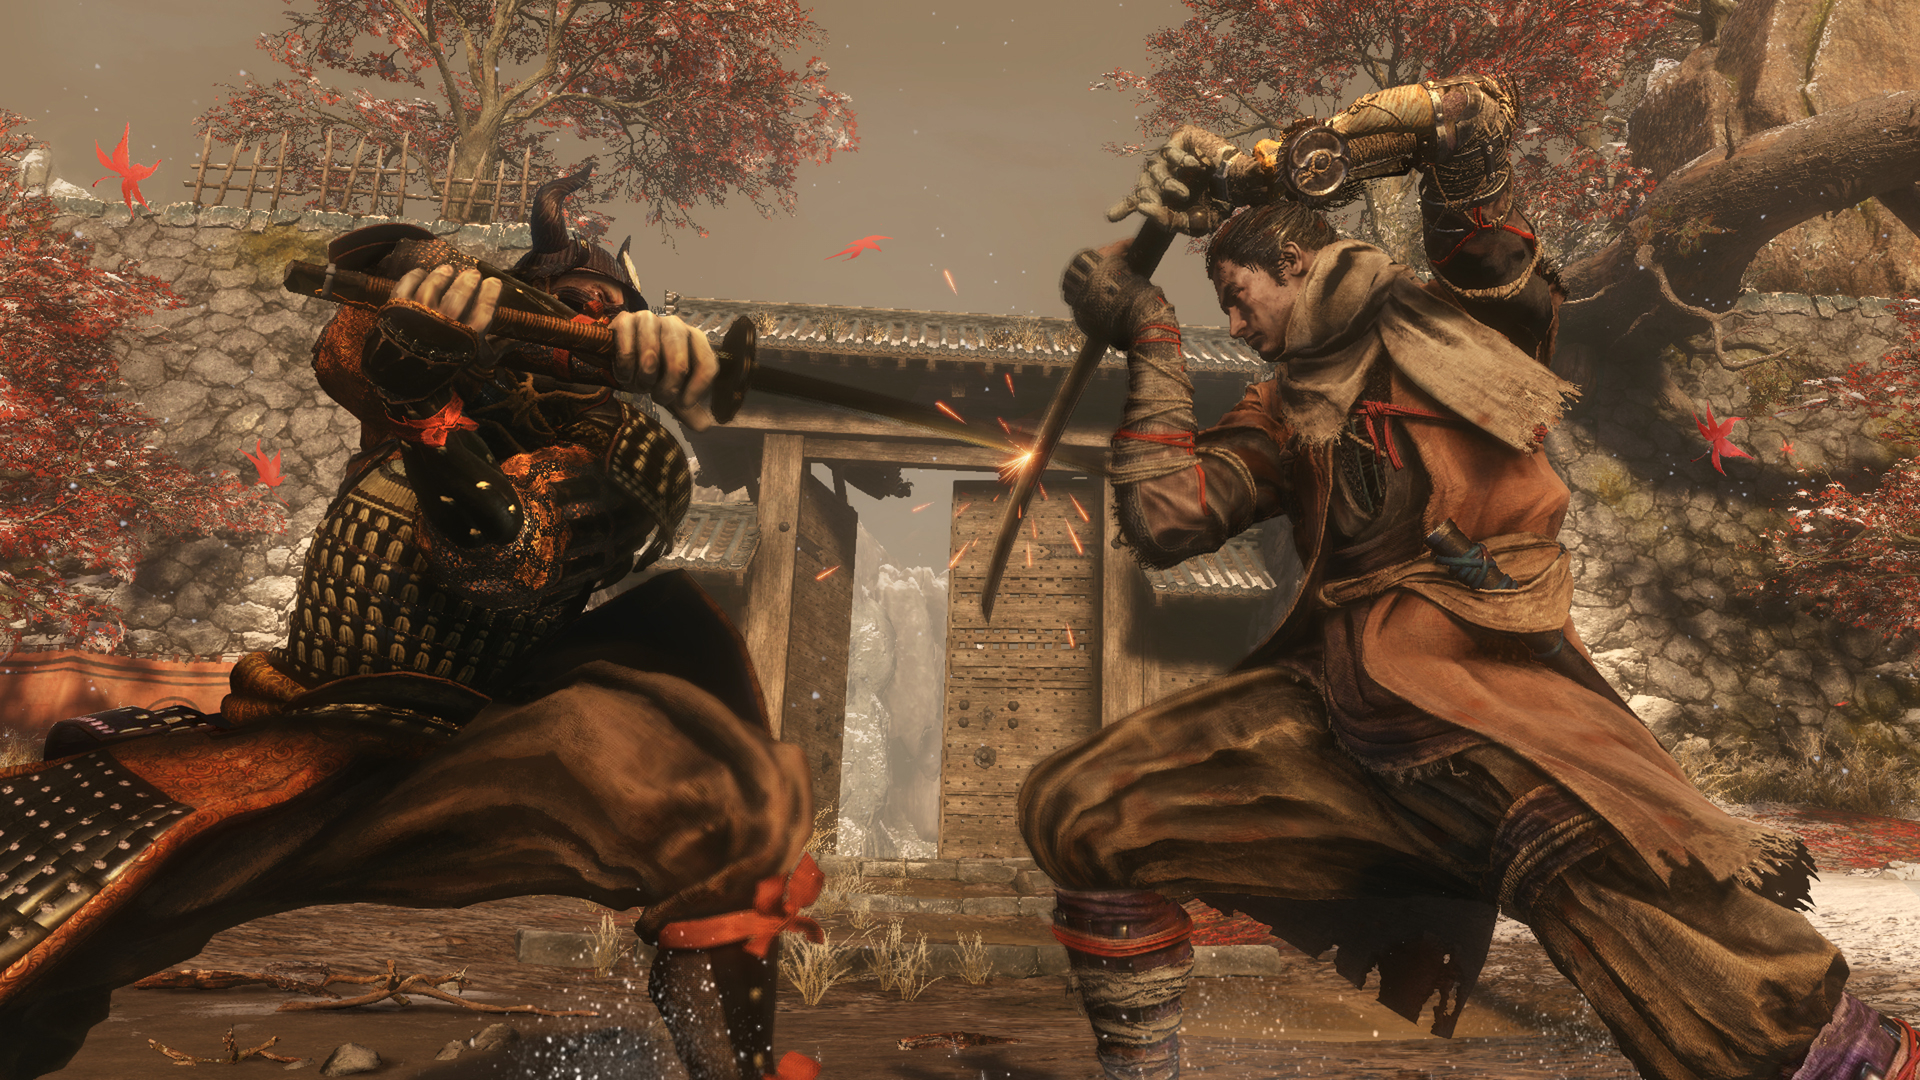 Five Ways That the Combat in Sekiro: Shadows Die Twice is Different Than Dark Souls